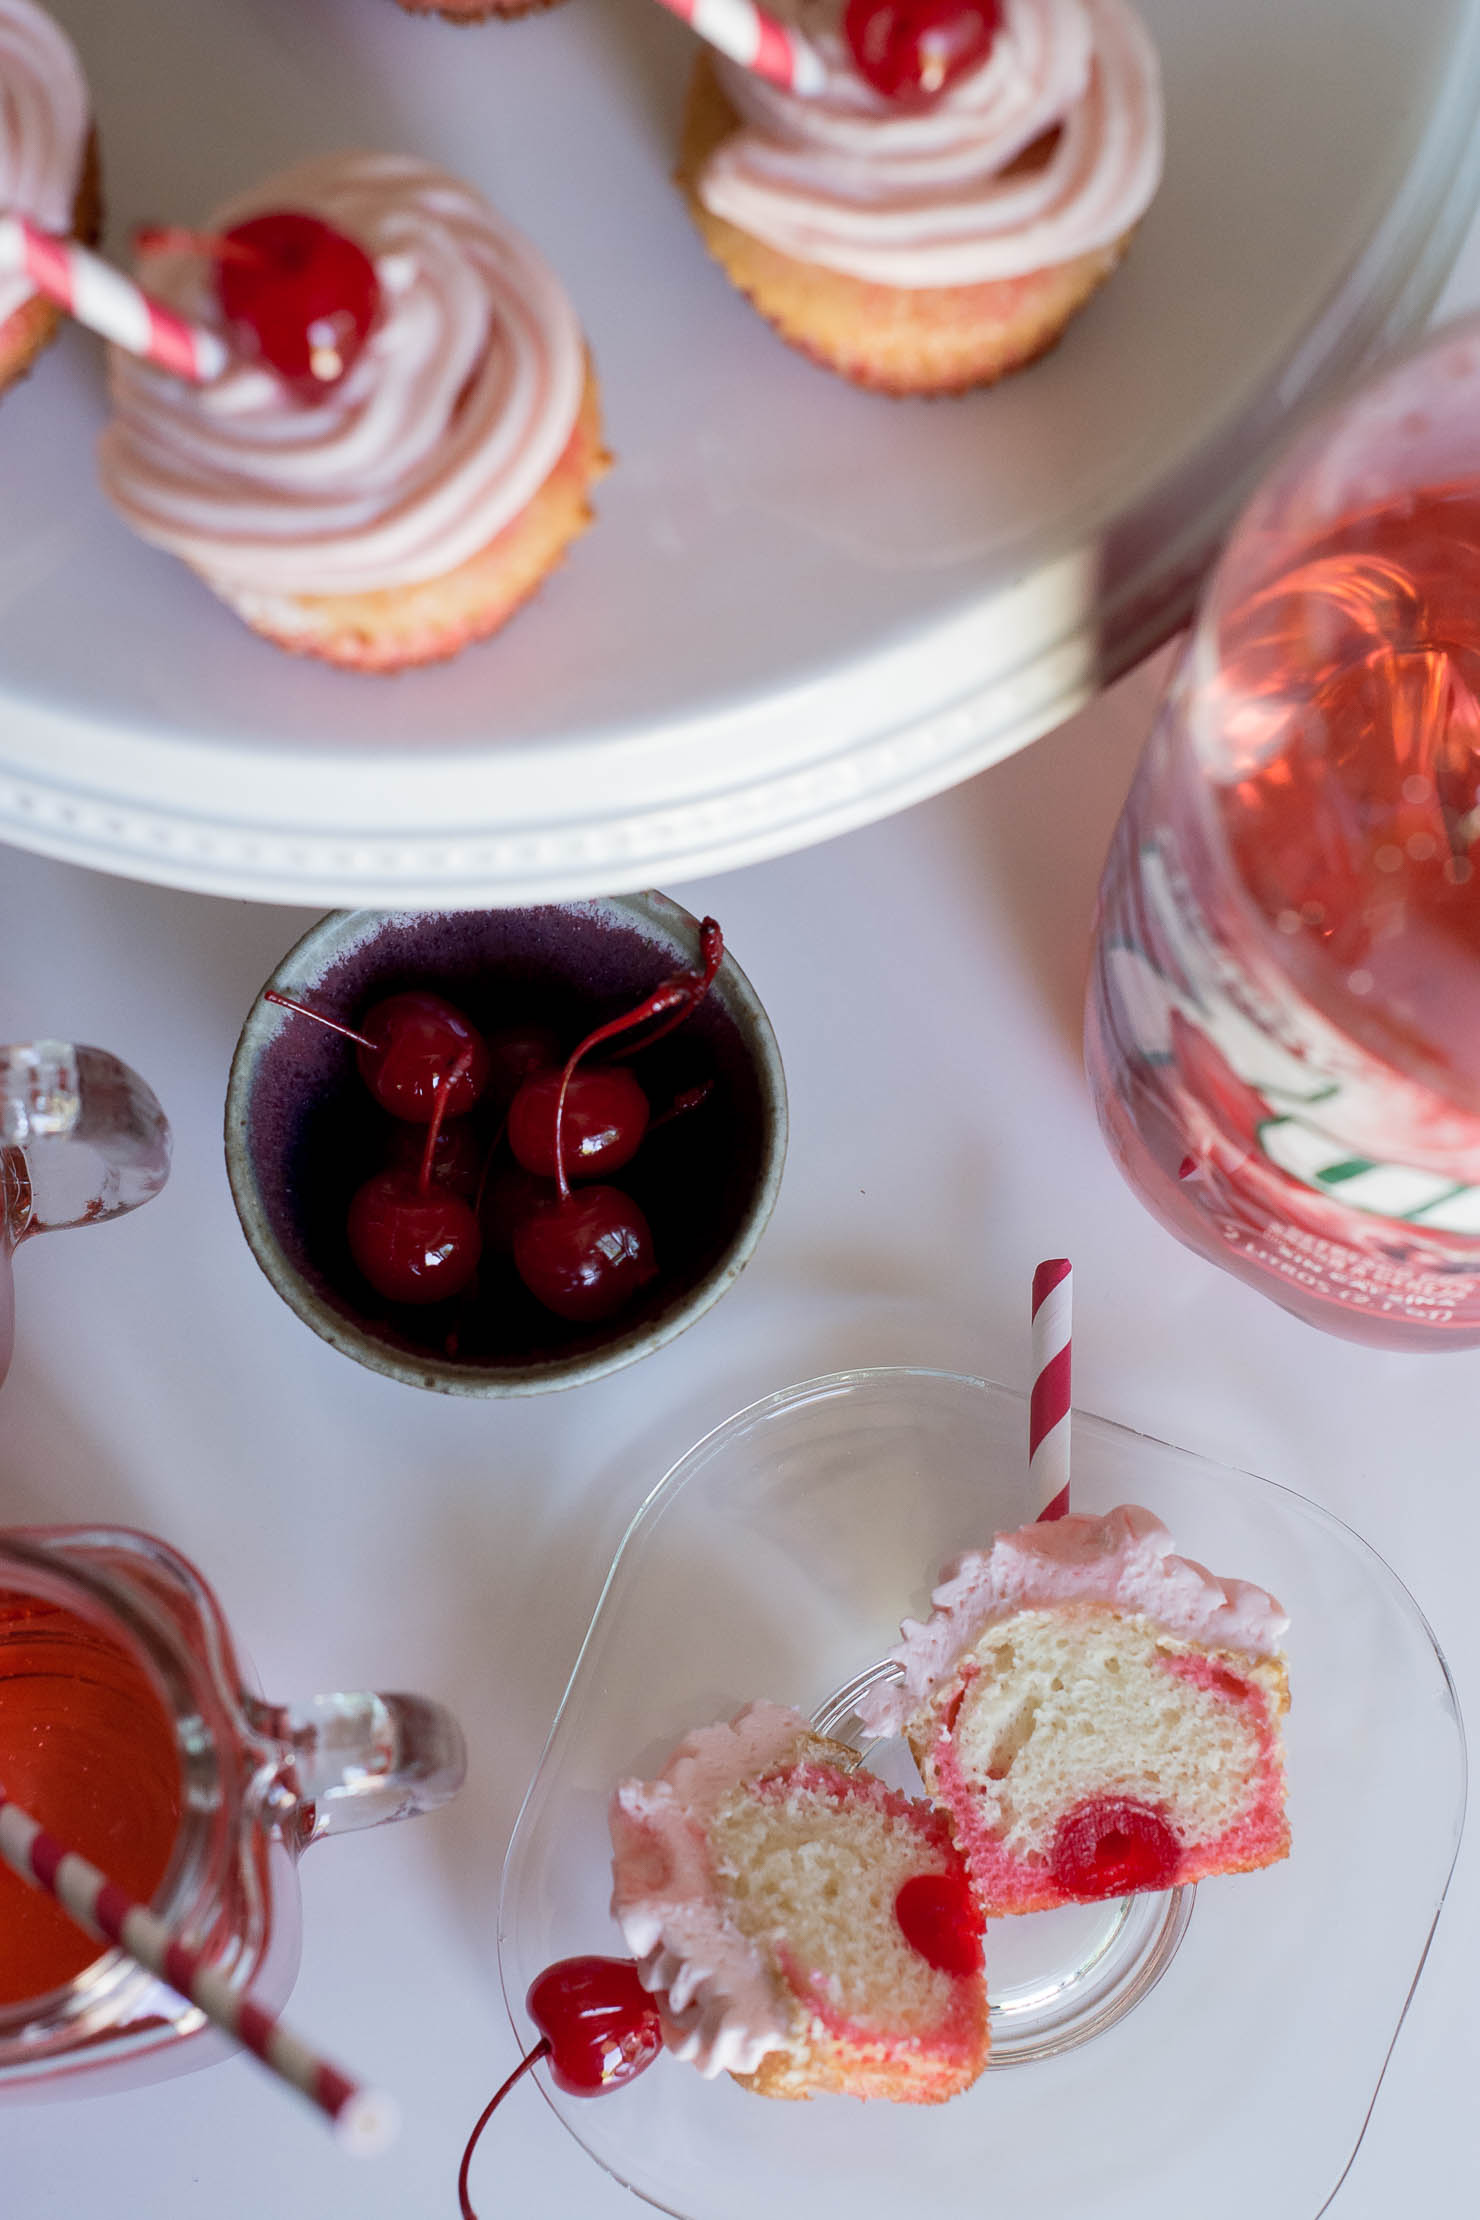 adorable shirley temple cupcakes with maraschino cherries and cherry 7up